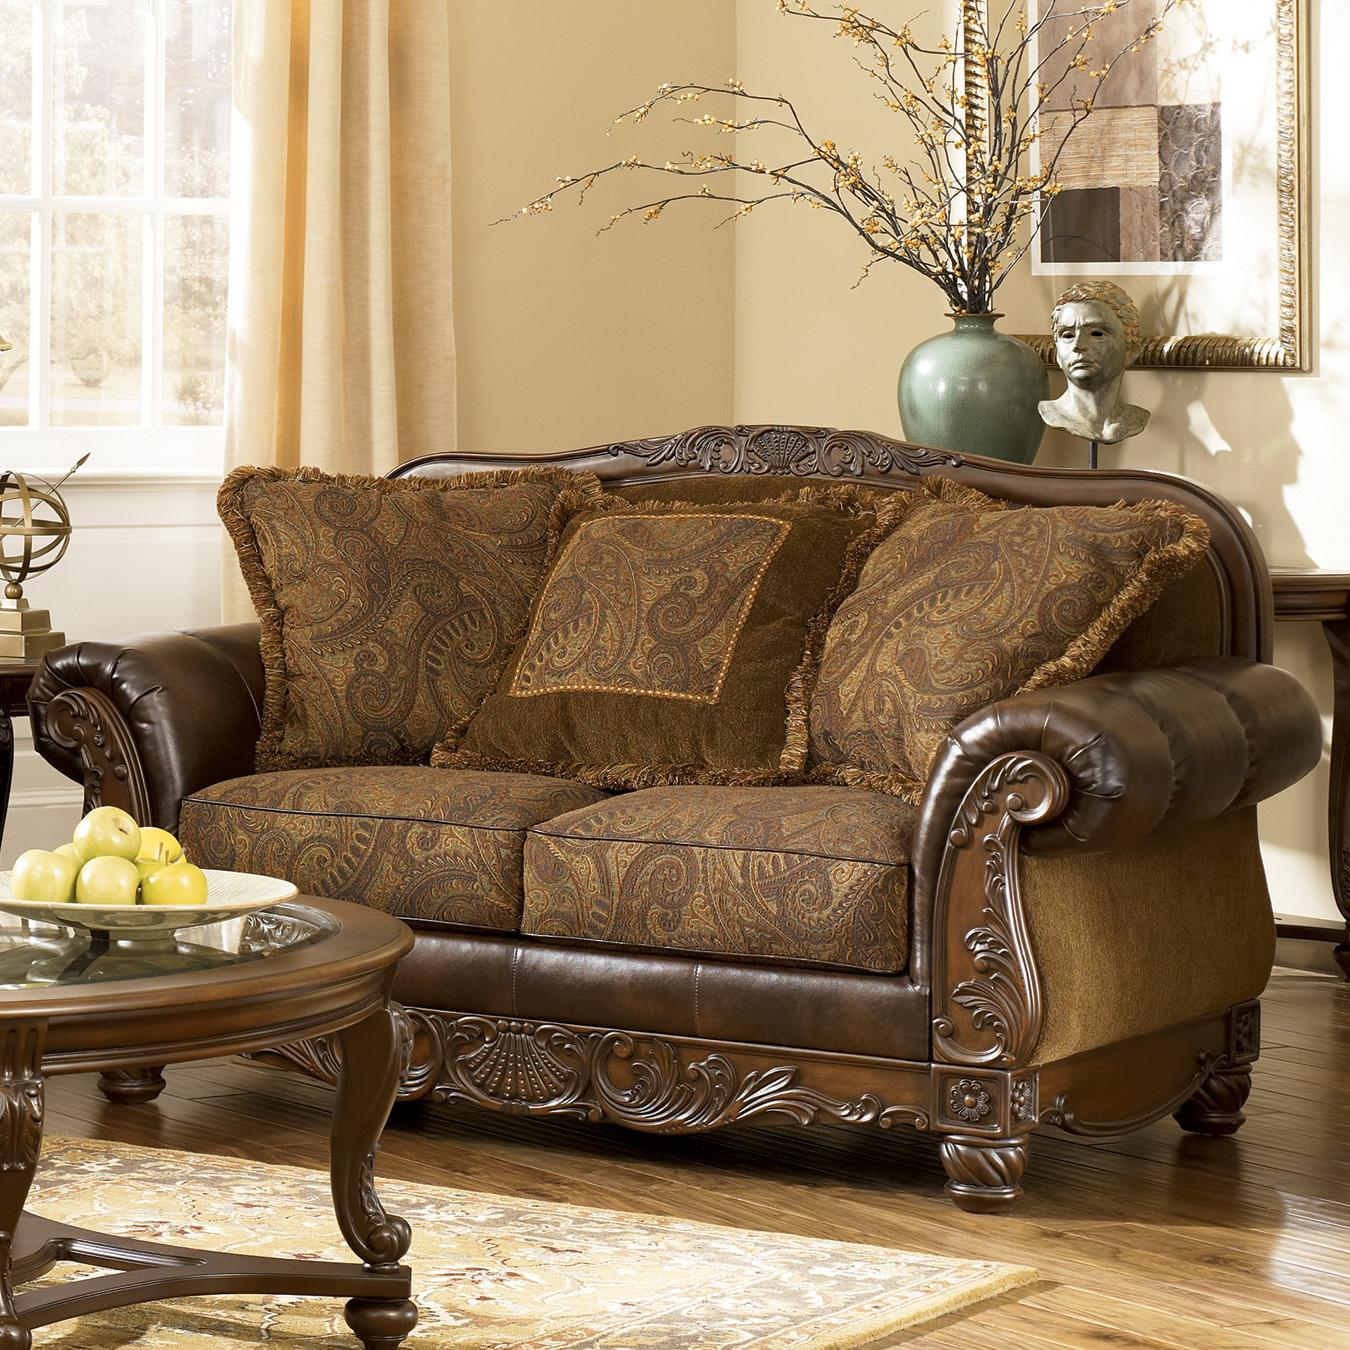 Furniture Ashley Furniture Nashville For Luxury Home: Signature Design By Ashley Fresco DuraBlend